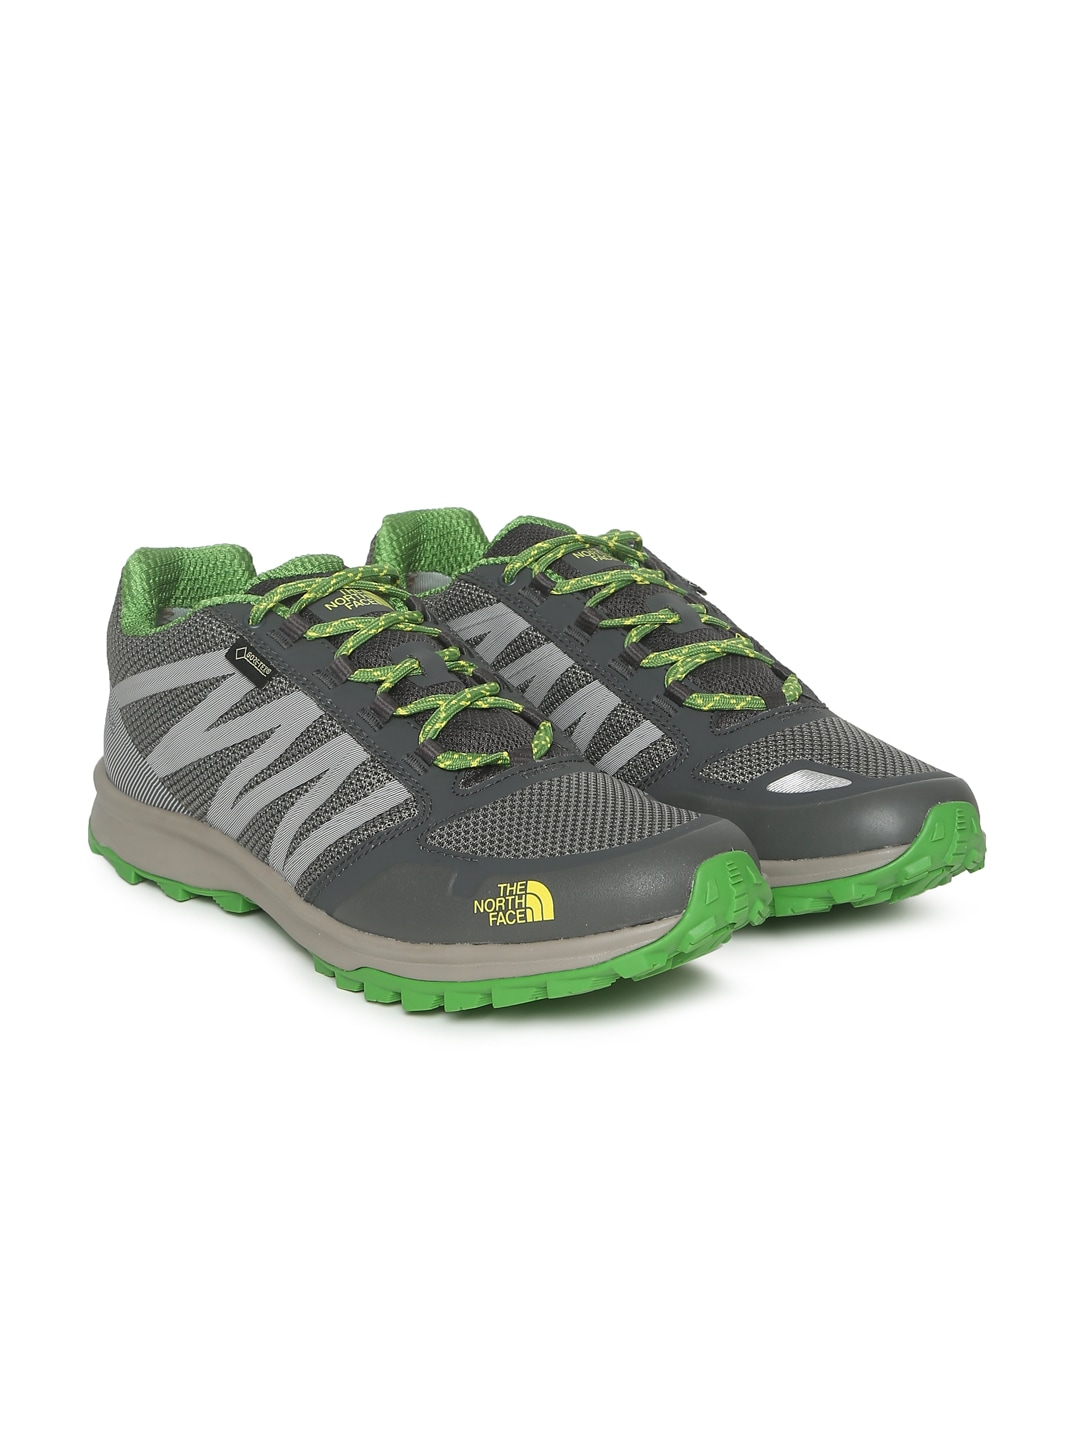 f1ddf44fe8f The North Face Men - Buy The North Face Men online in India